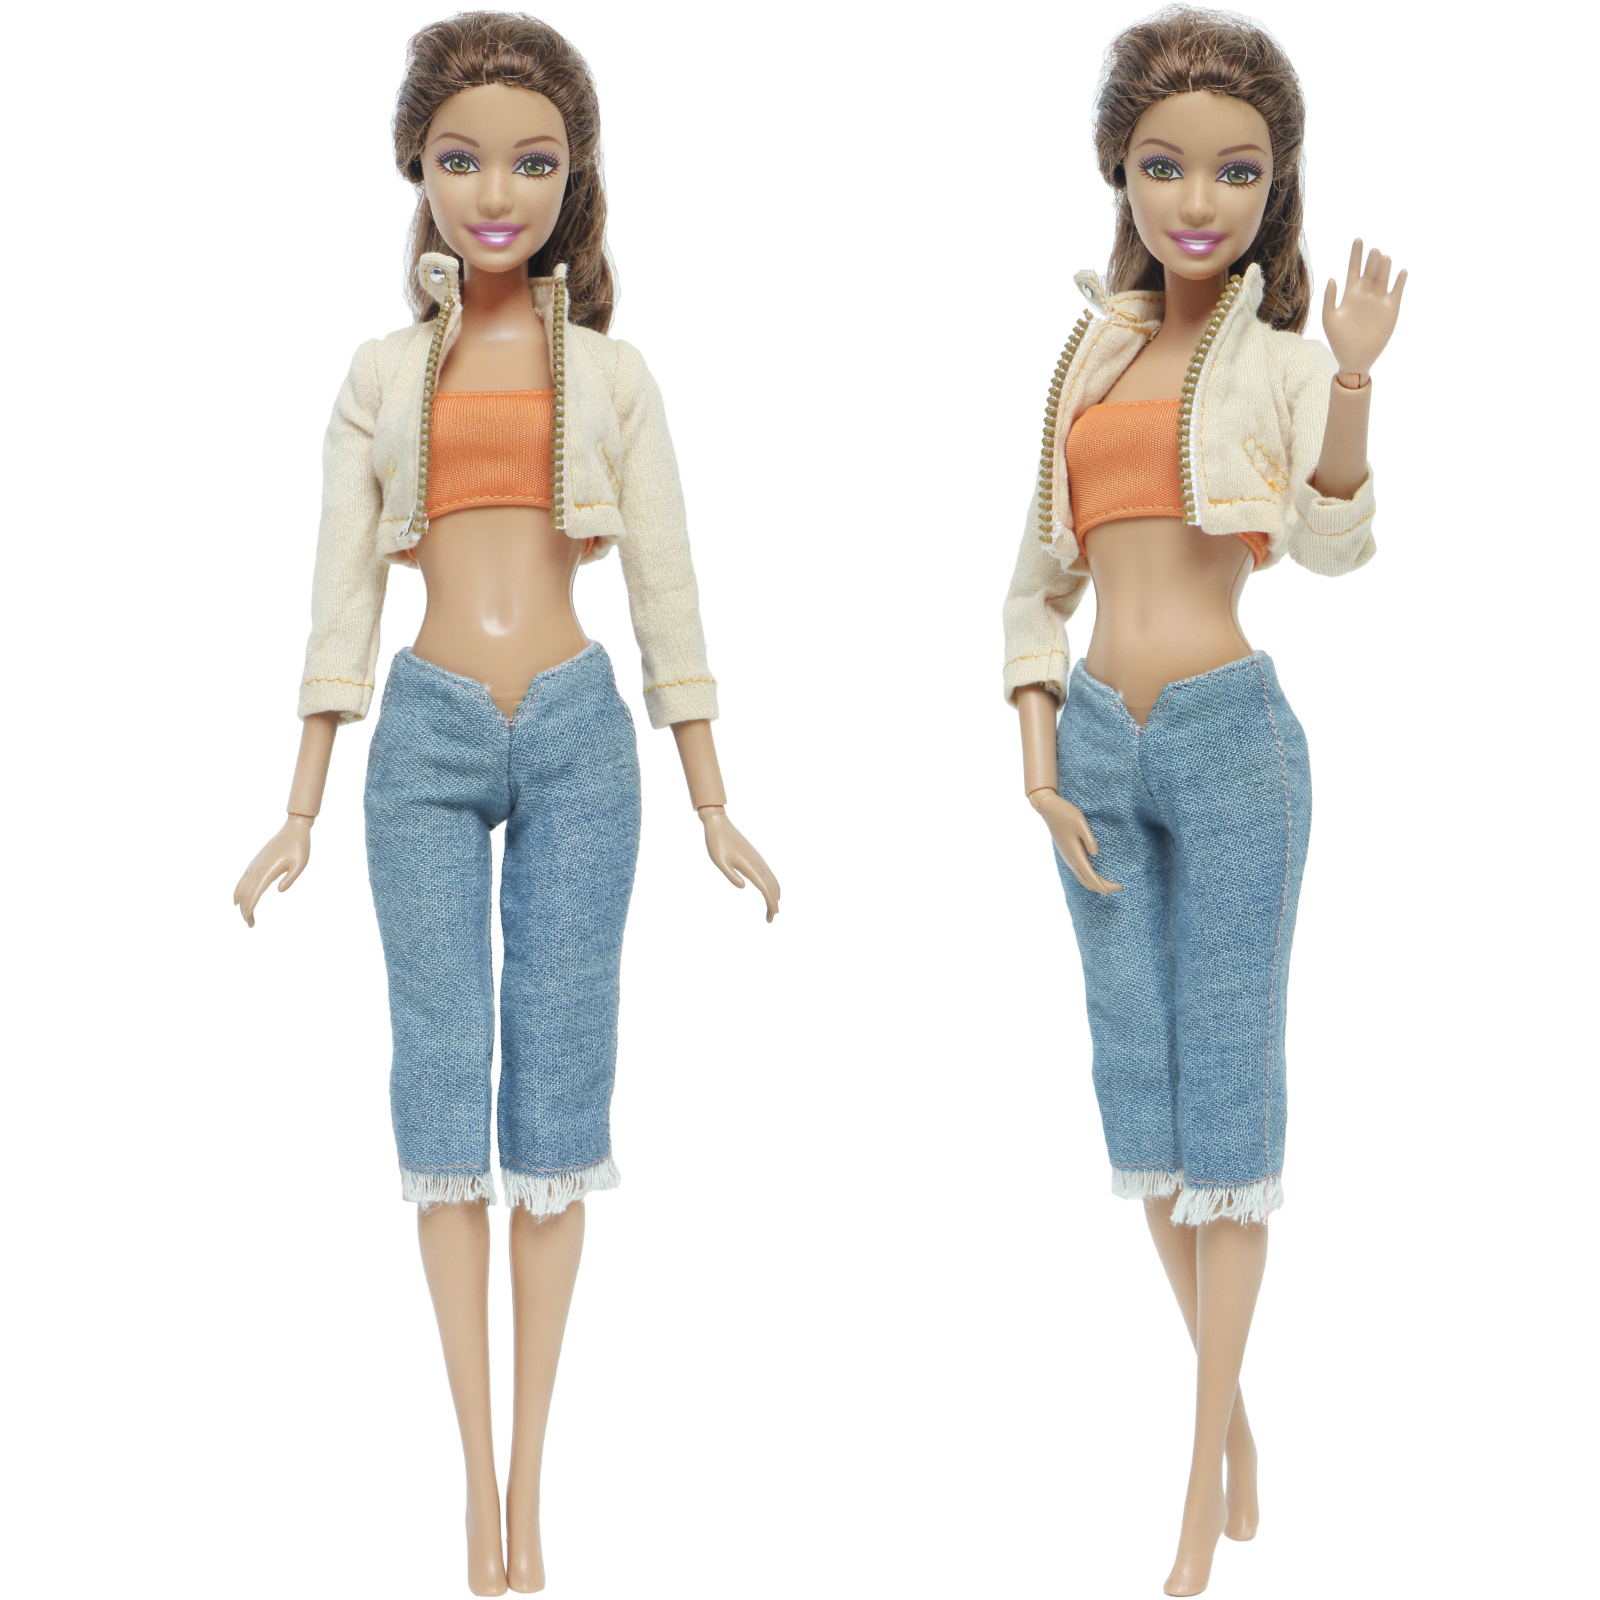 Fashion Lady Outfit Coat Orange Shirt Trousers Jeans Daily Casual Wear Accessories Clothes For Barbie Doll Baby Girl DIY Toy